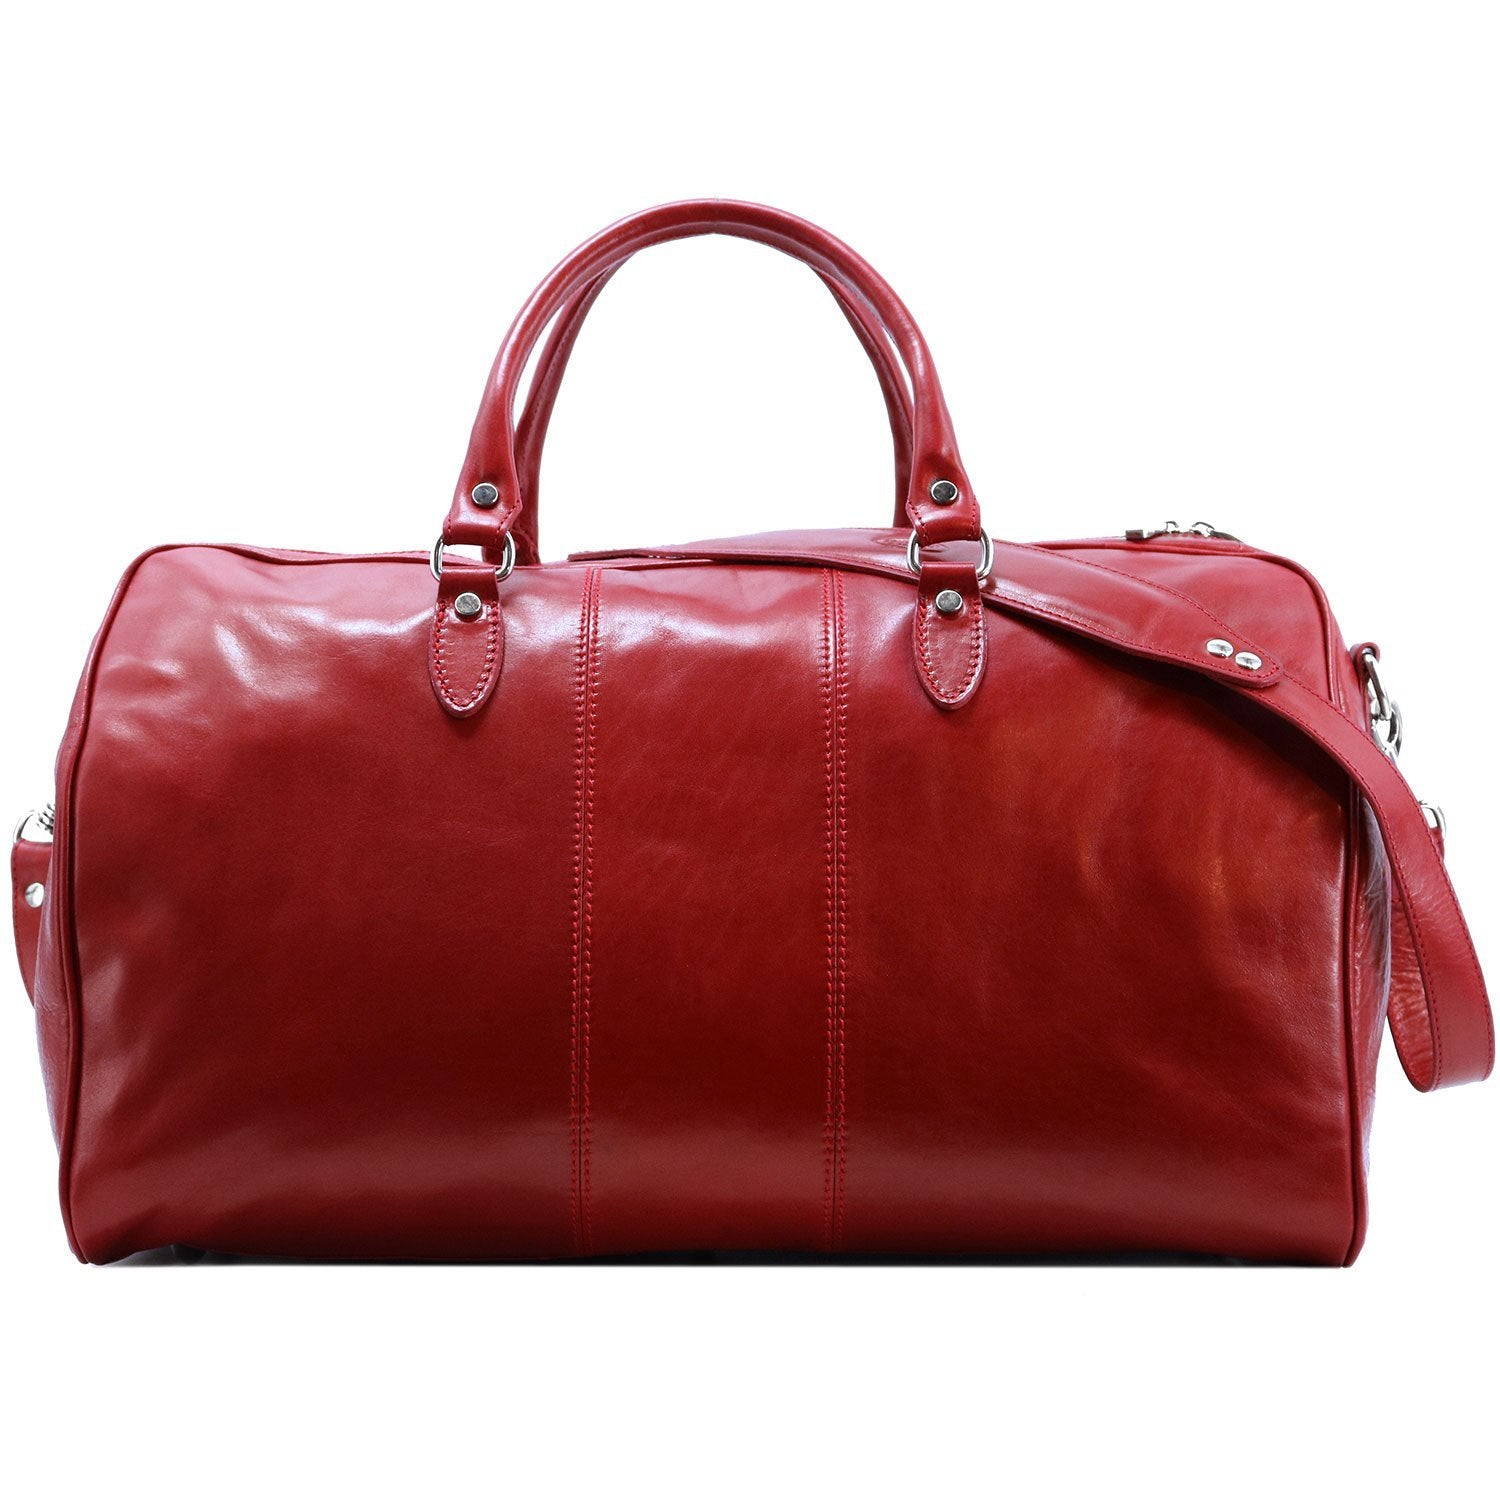 Floto Venezia Leather Travel Duffle Bag 2.0 - Tuscan Red